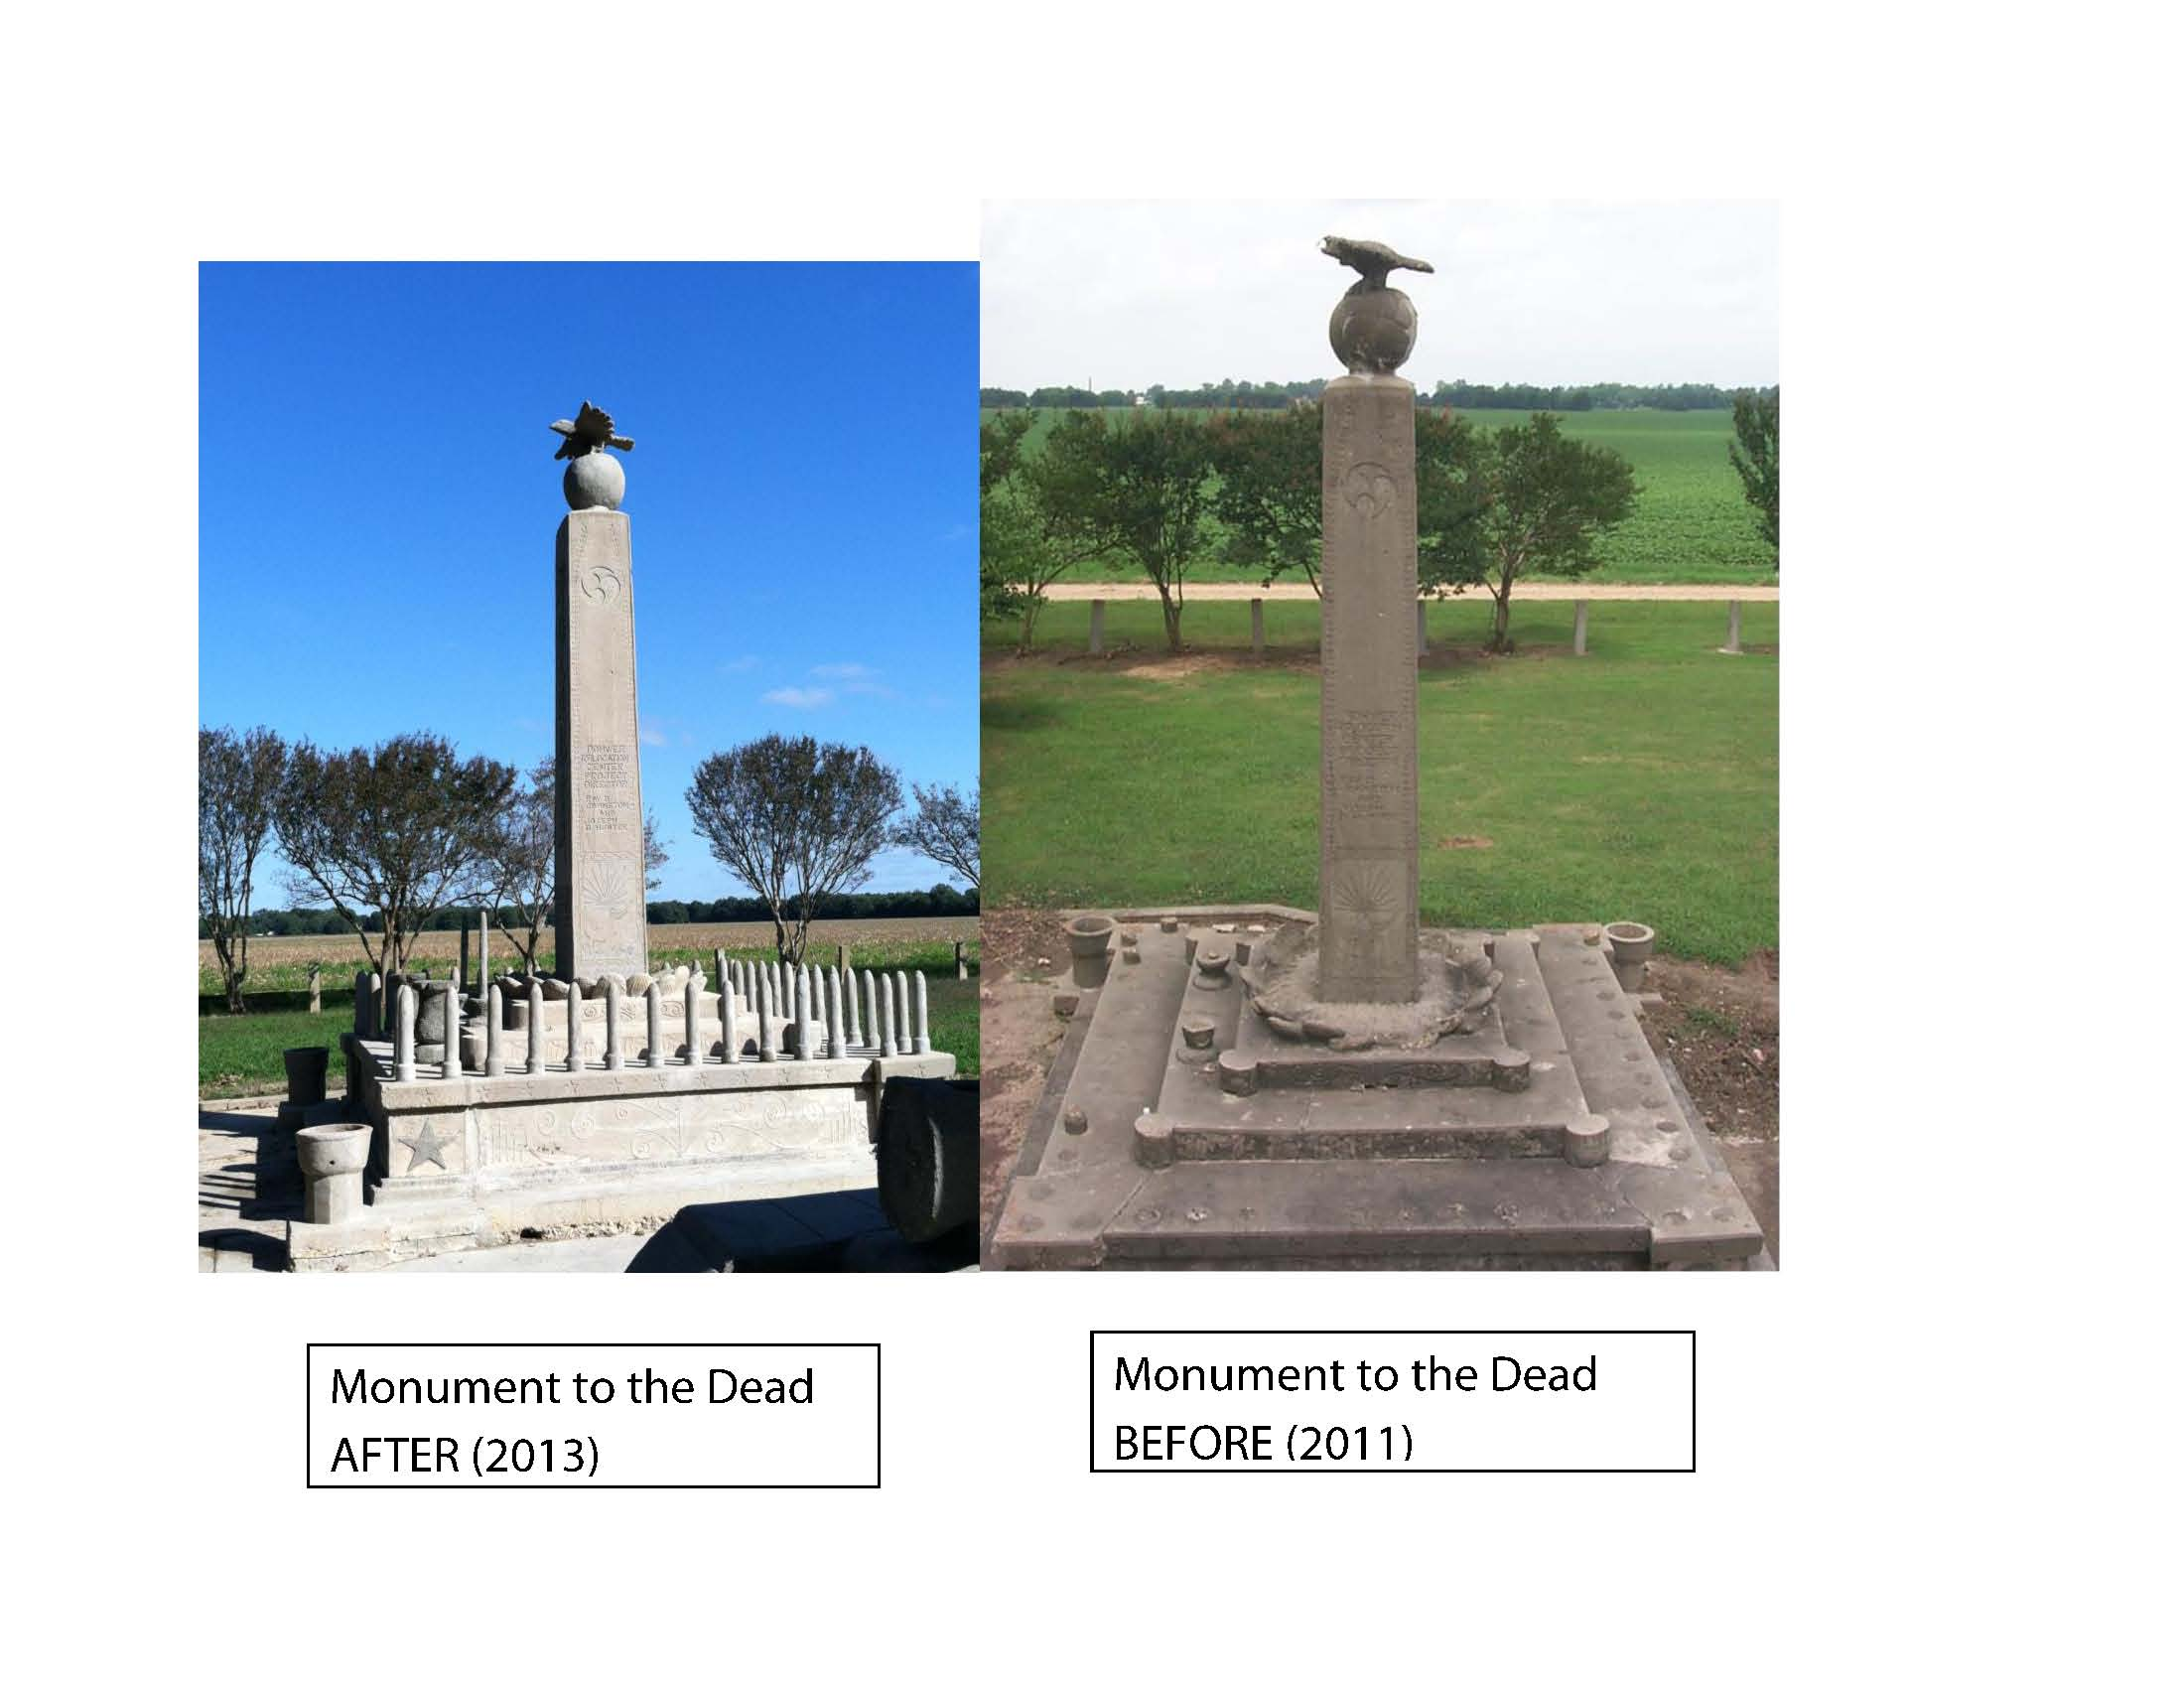 Monument to the Dead Comparison